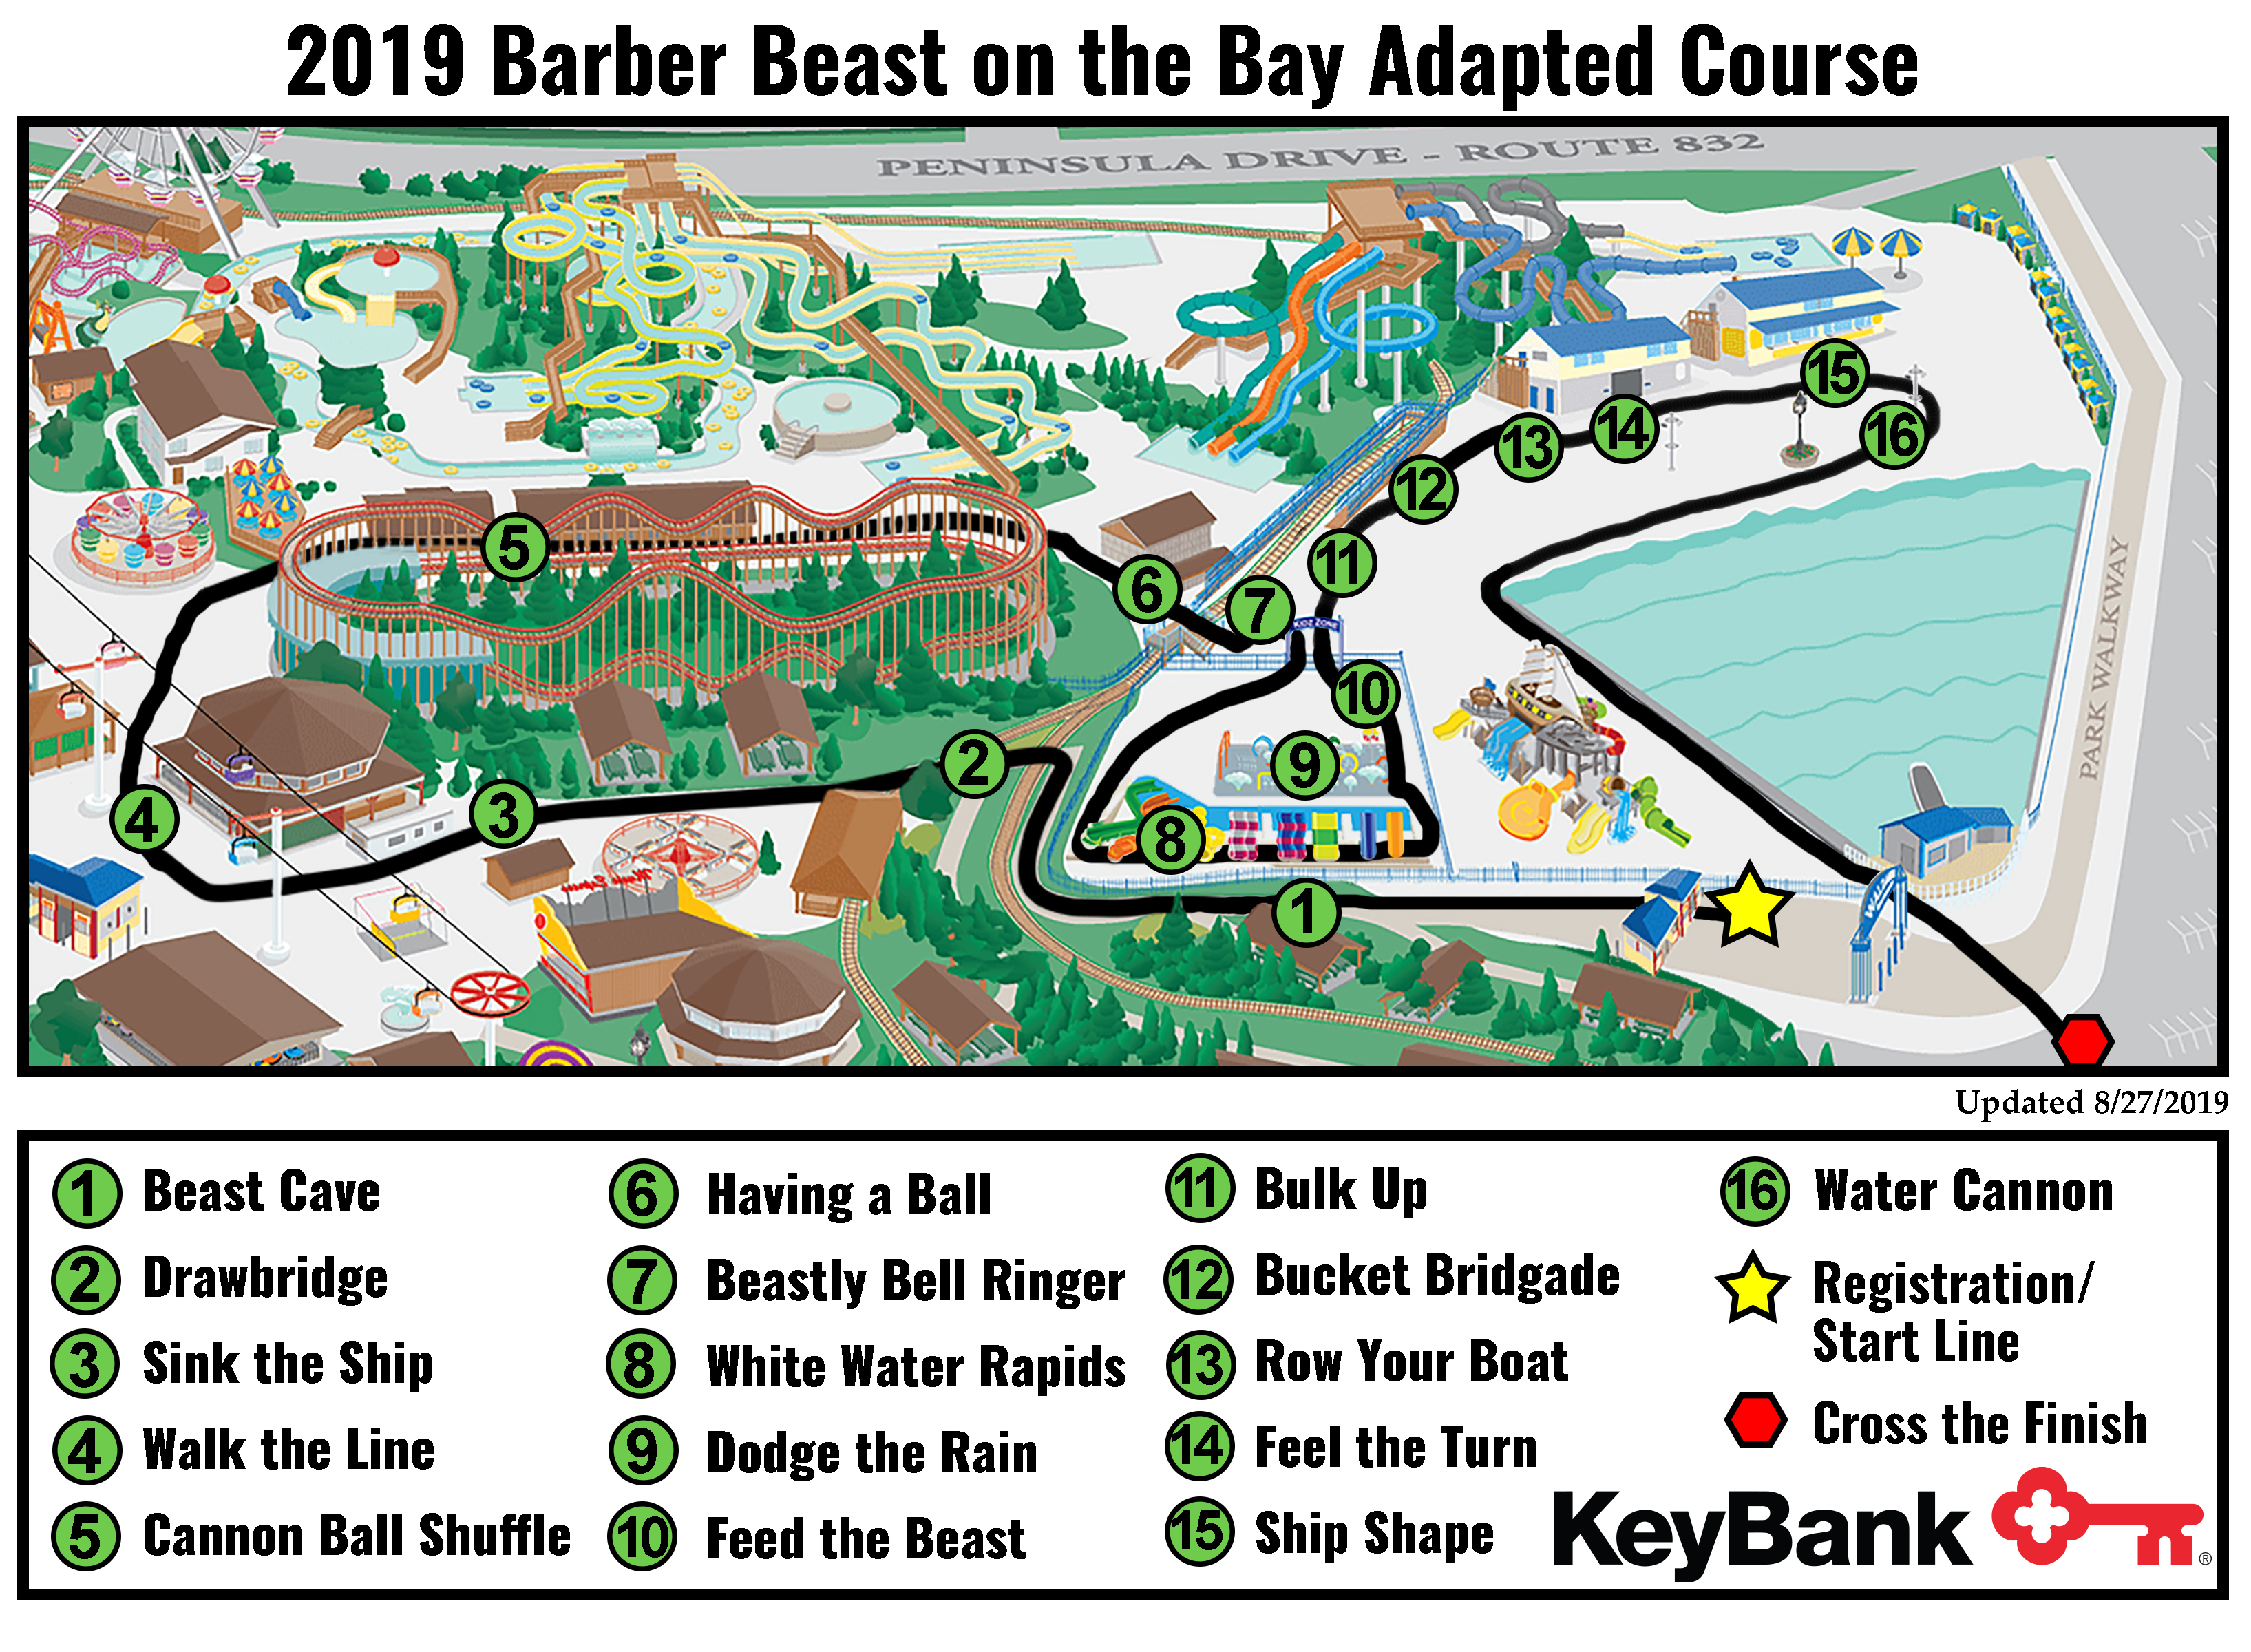 Adapted Course Map